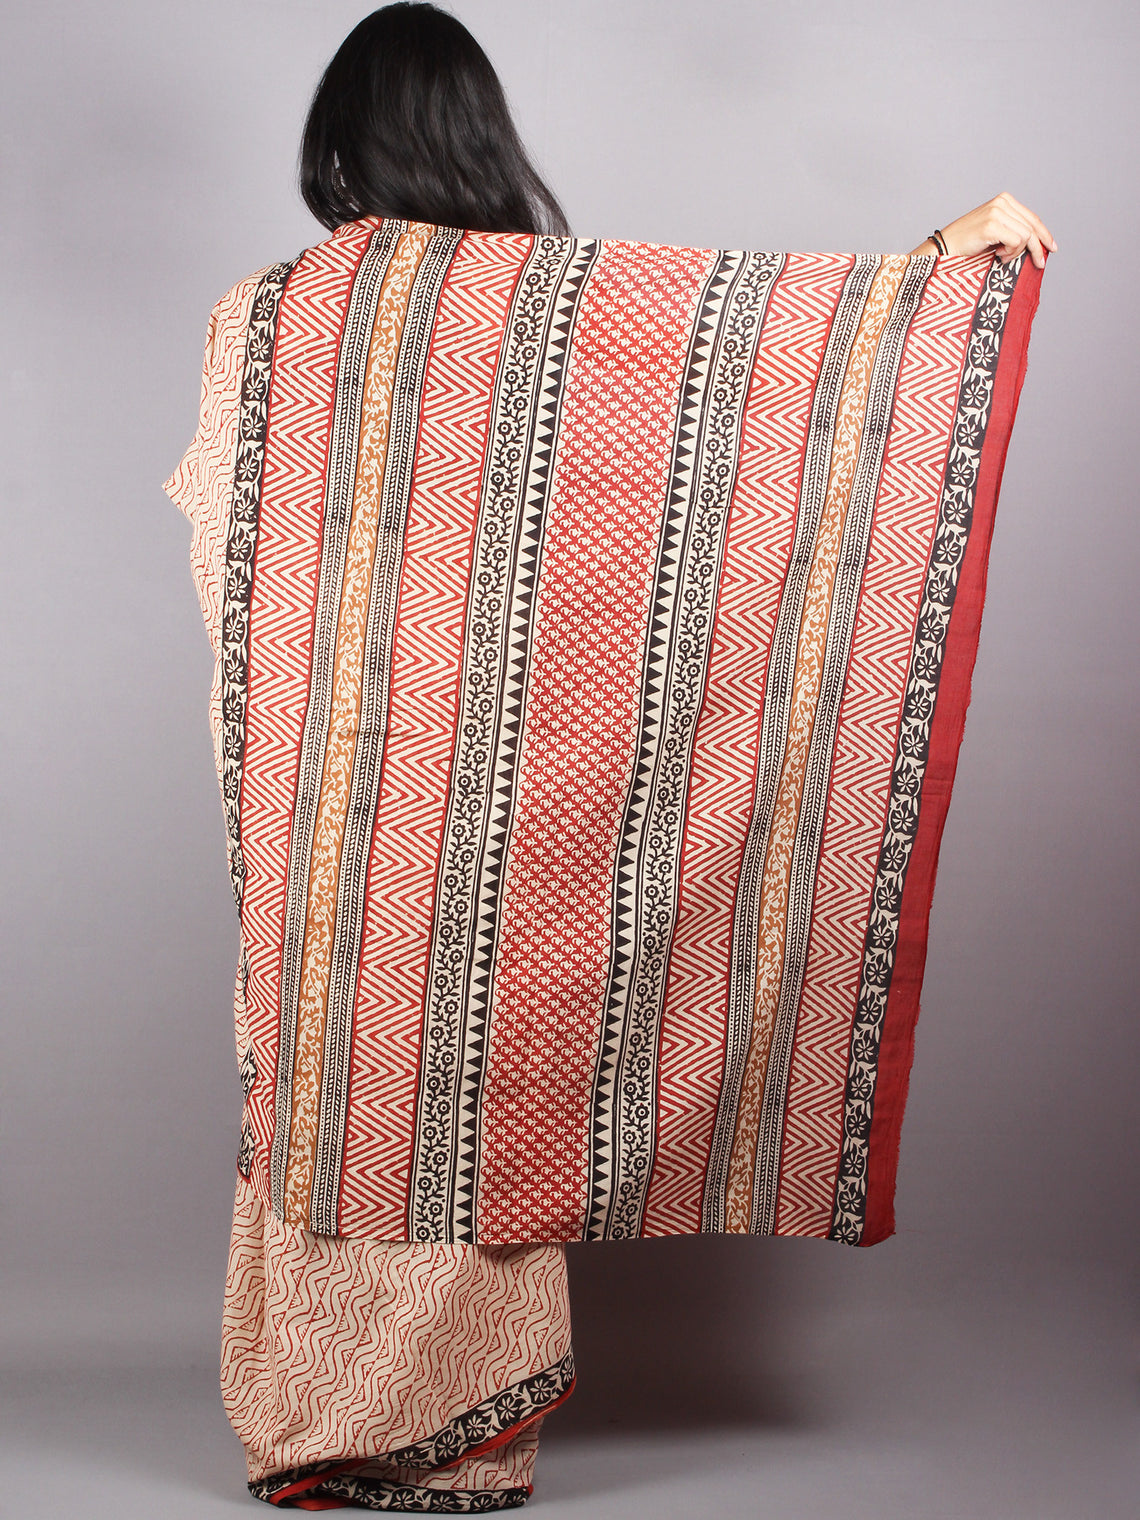 Beige Red Cotton Hand Block Printed Saree - S03170179